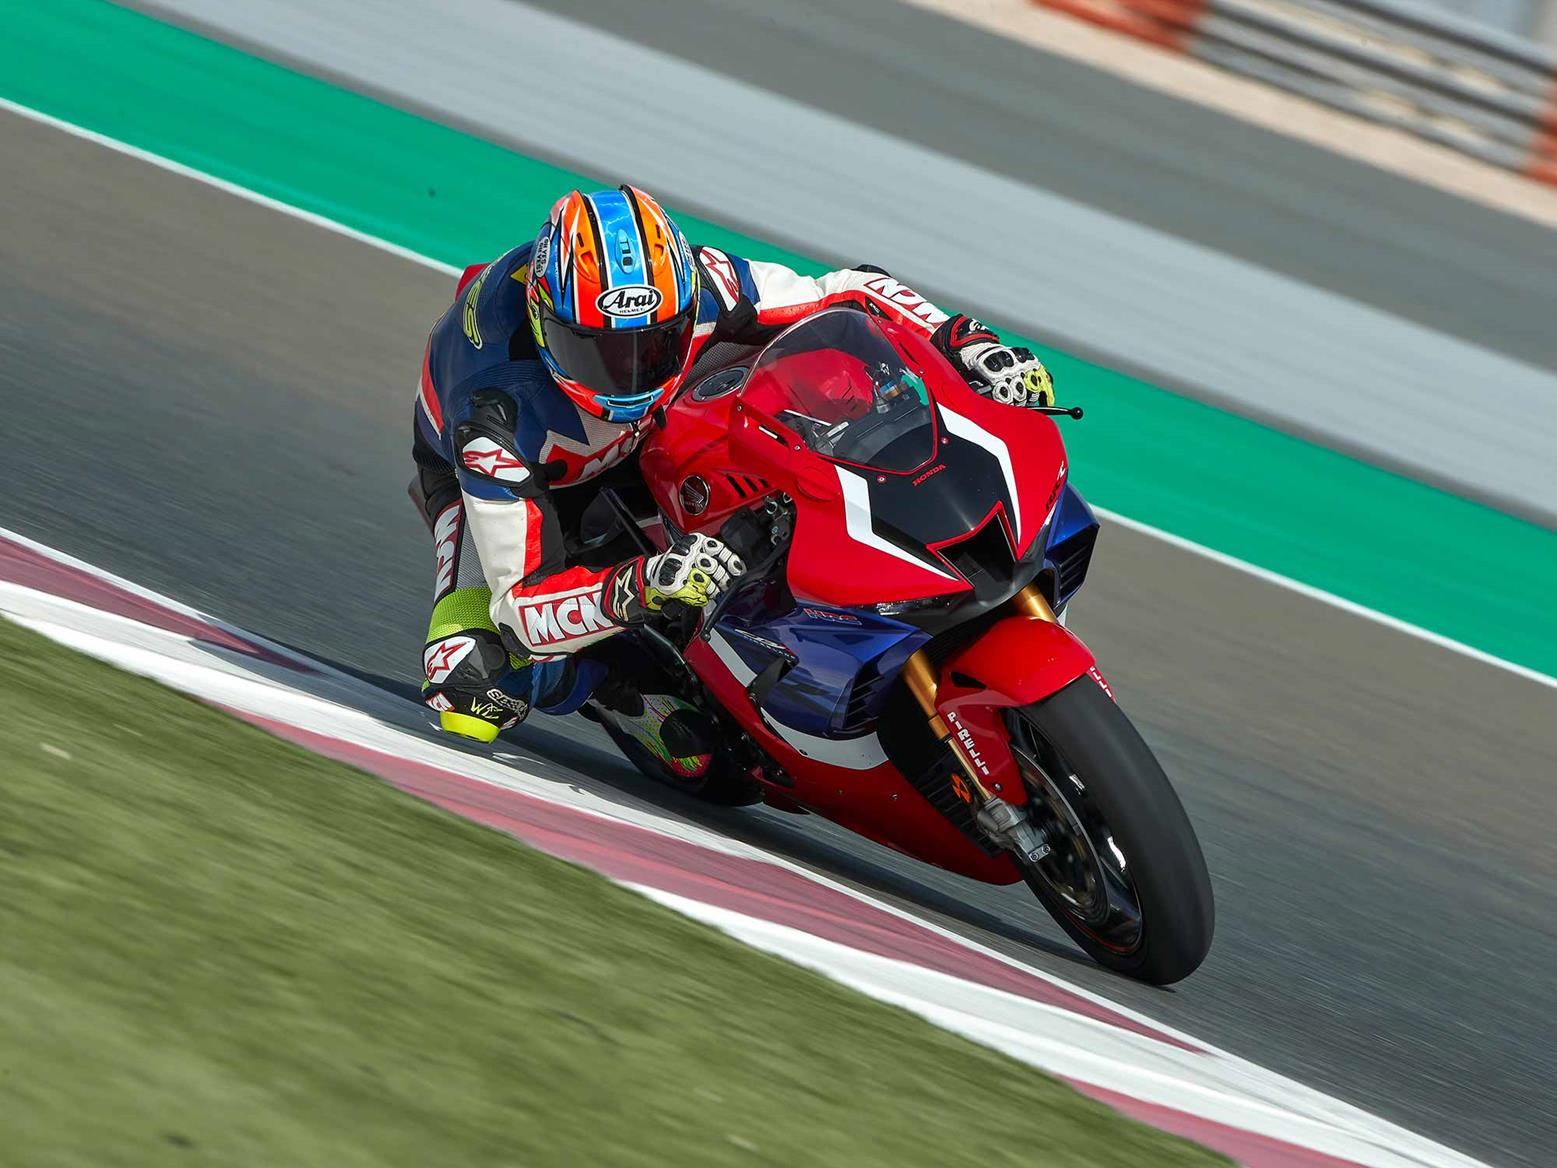 HONDA CBR1000RR-R FIREBLADE SP (2020-on) Review